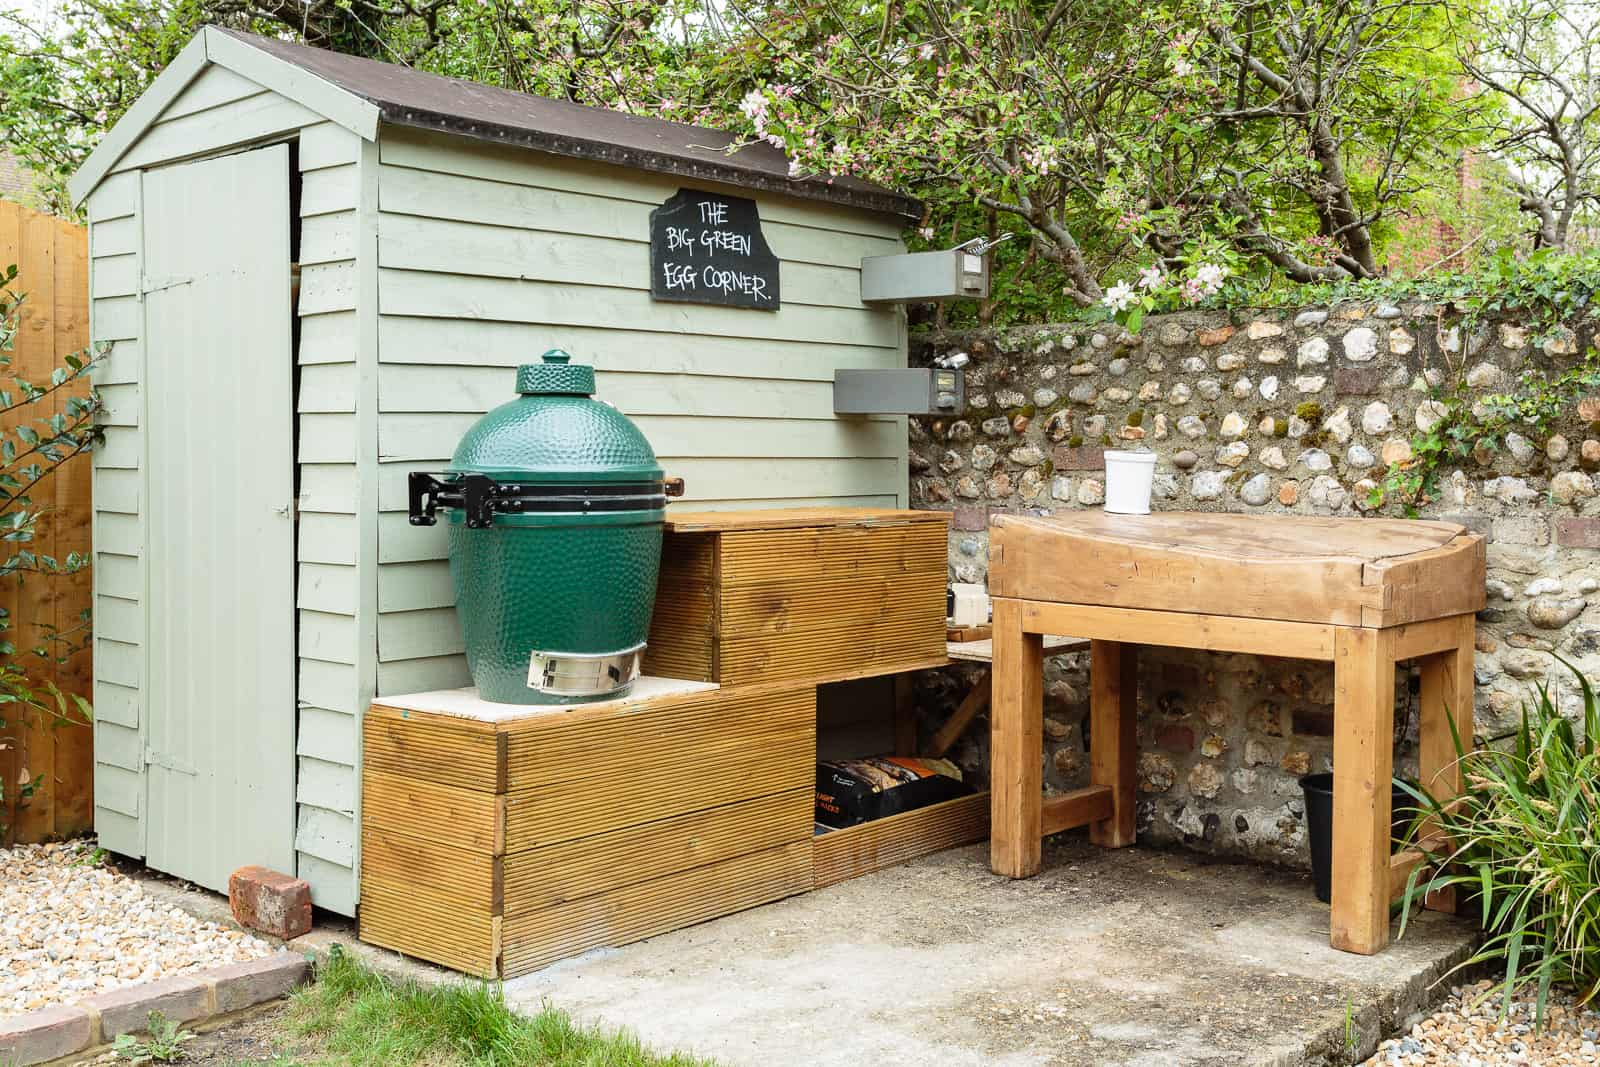 garden scene featuring big green egg BBQ against shed with wooden preparation area